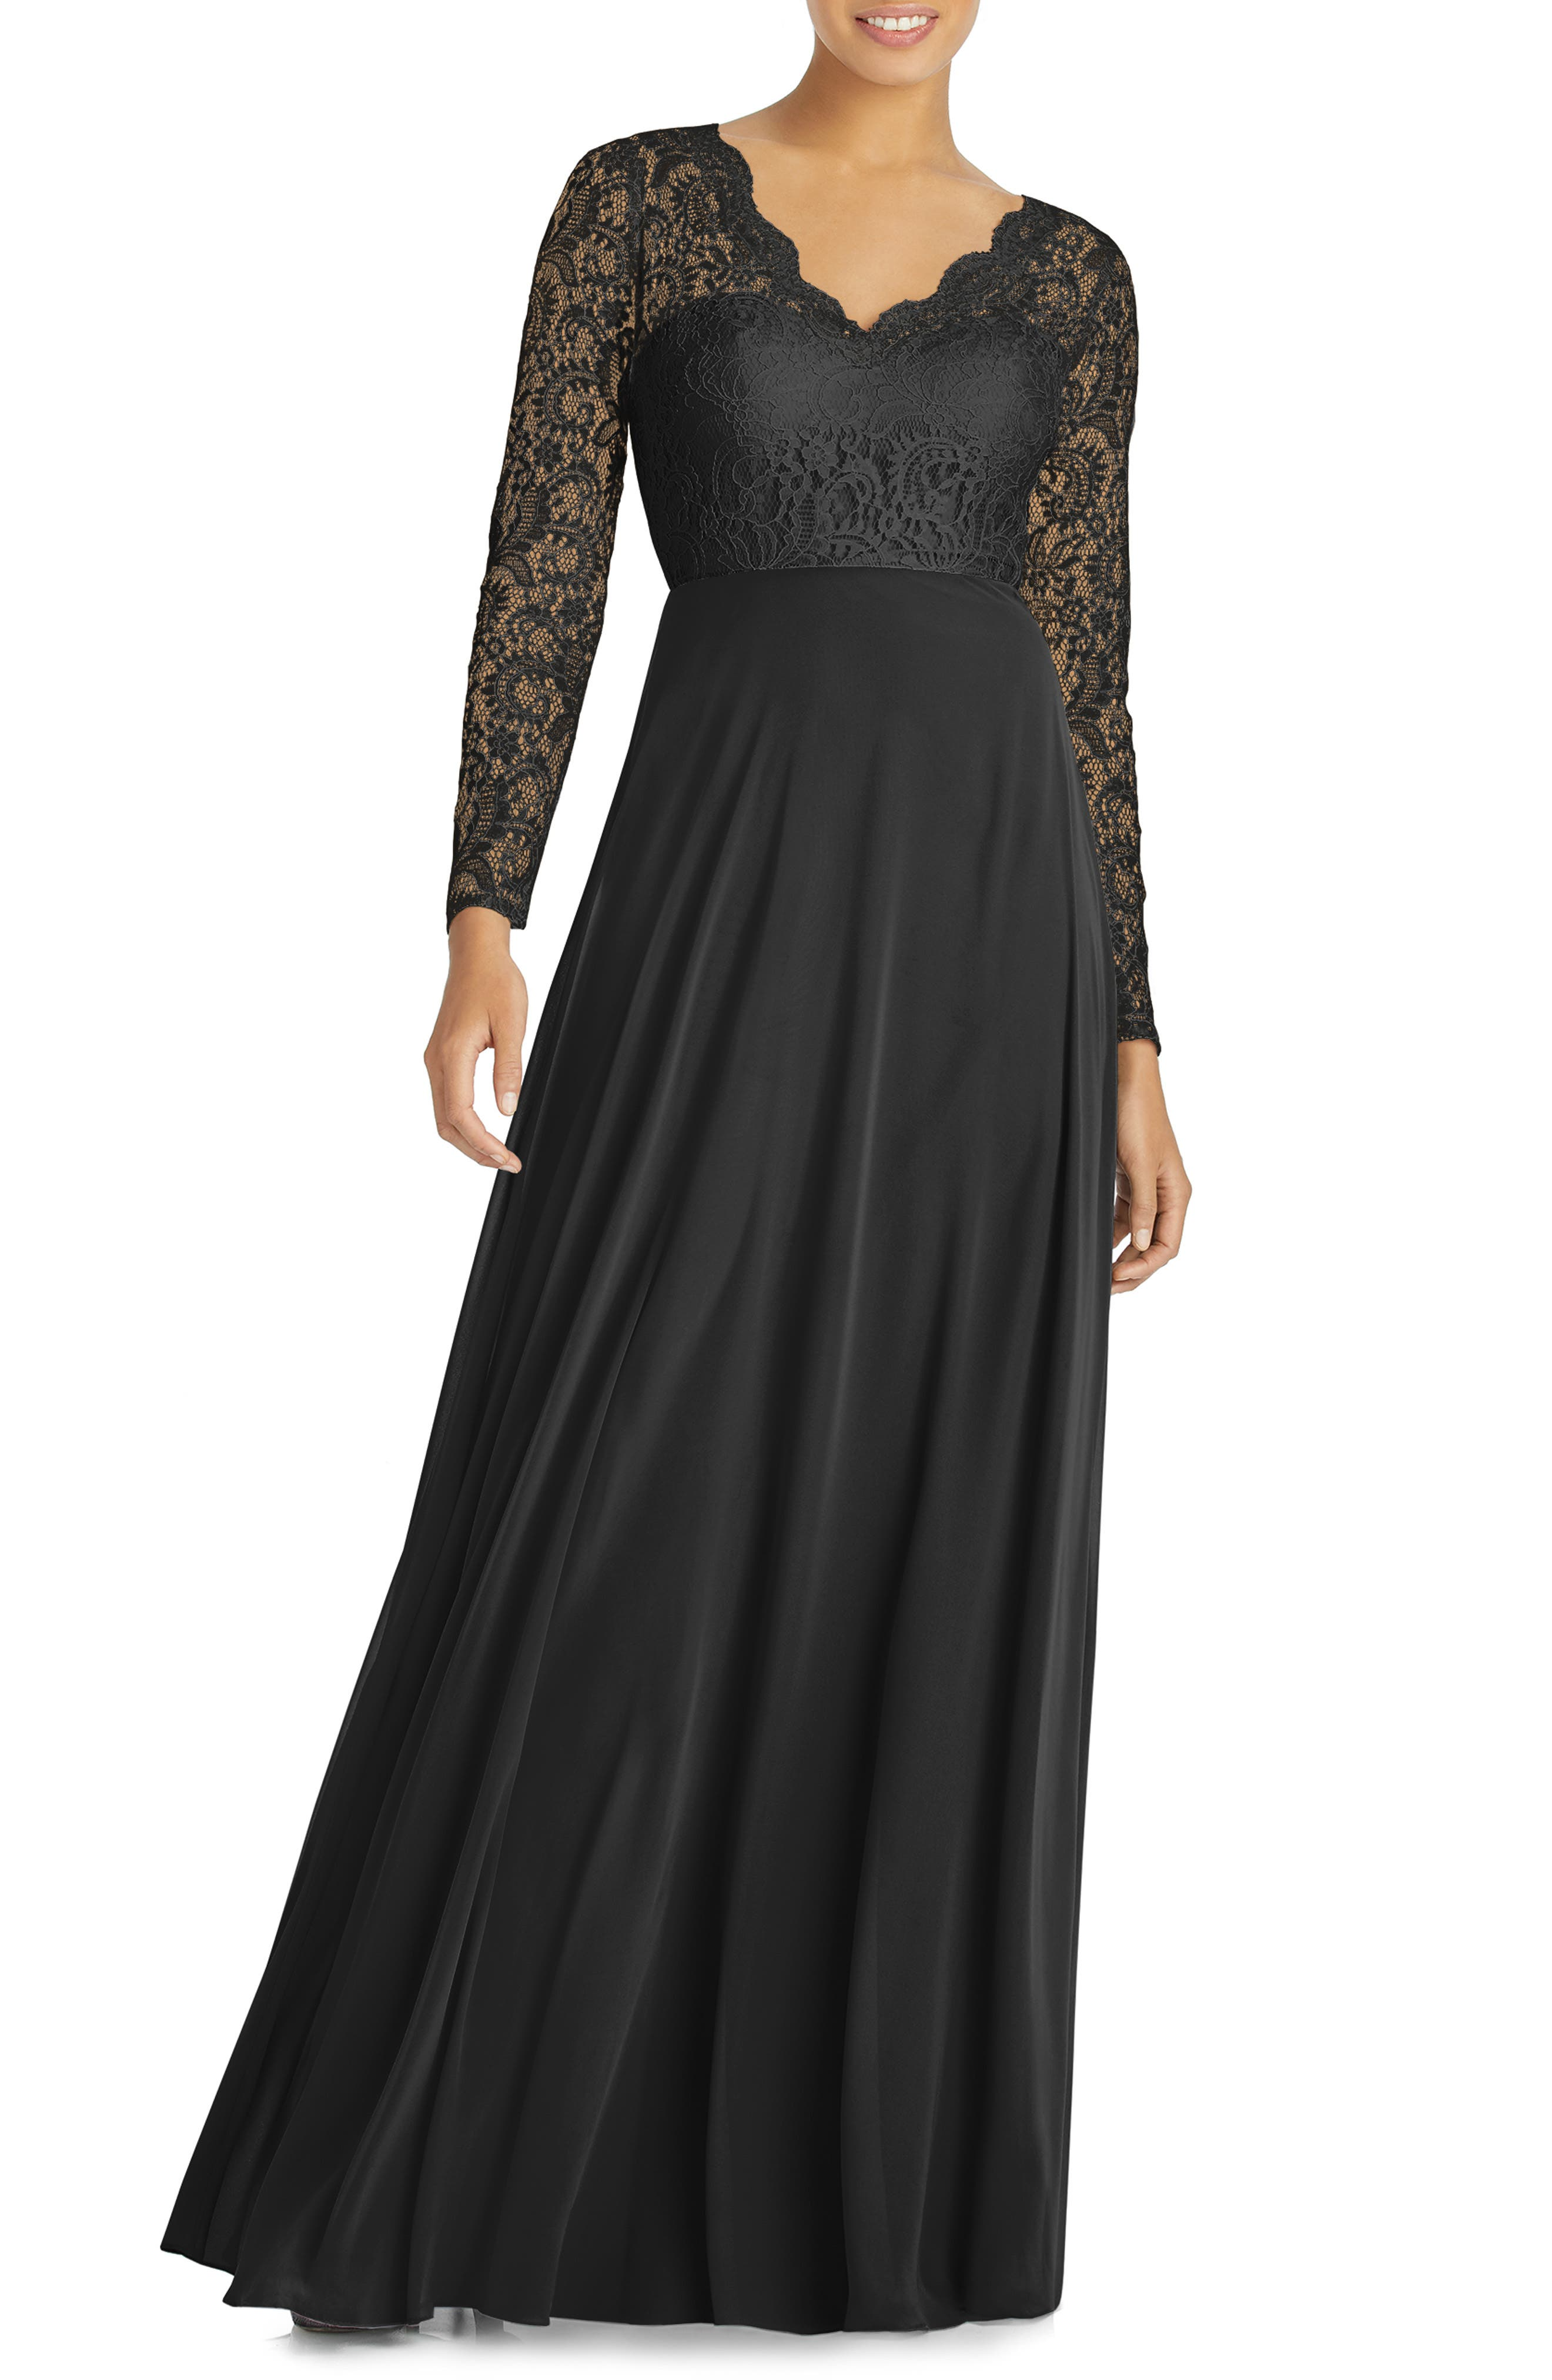 DESSY COLLECTION, Long Sleeve Lace & Chiffon Gown, Main thumbnail 1, color, BLACK